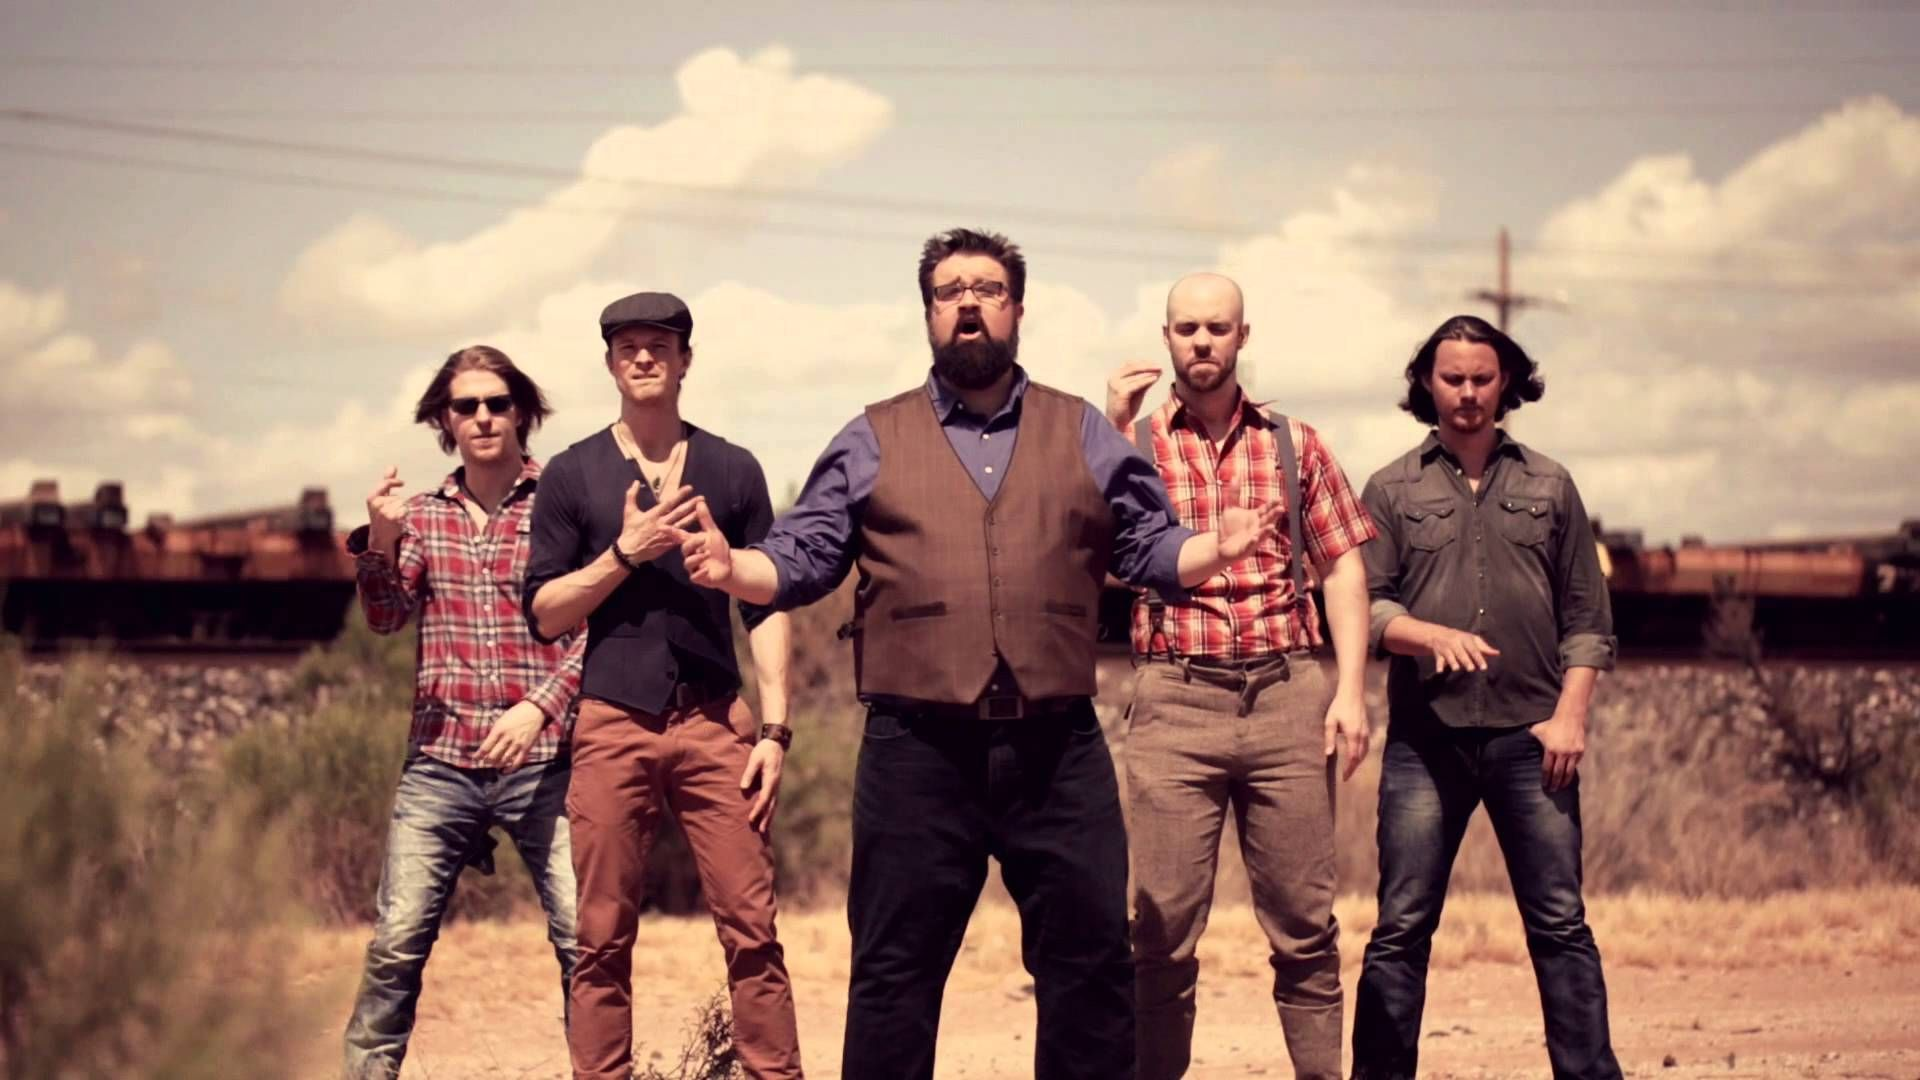 Wagon Wheel Song Of The South Old Crowe Medicine Show And Alabama Home Free Medley Home Free Music Home Free Youtube Song Of The South